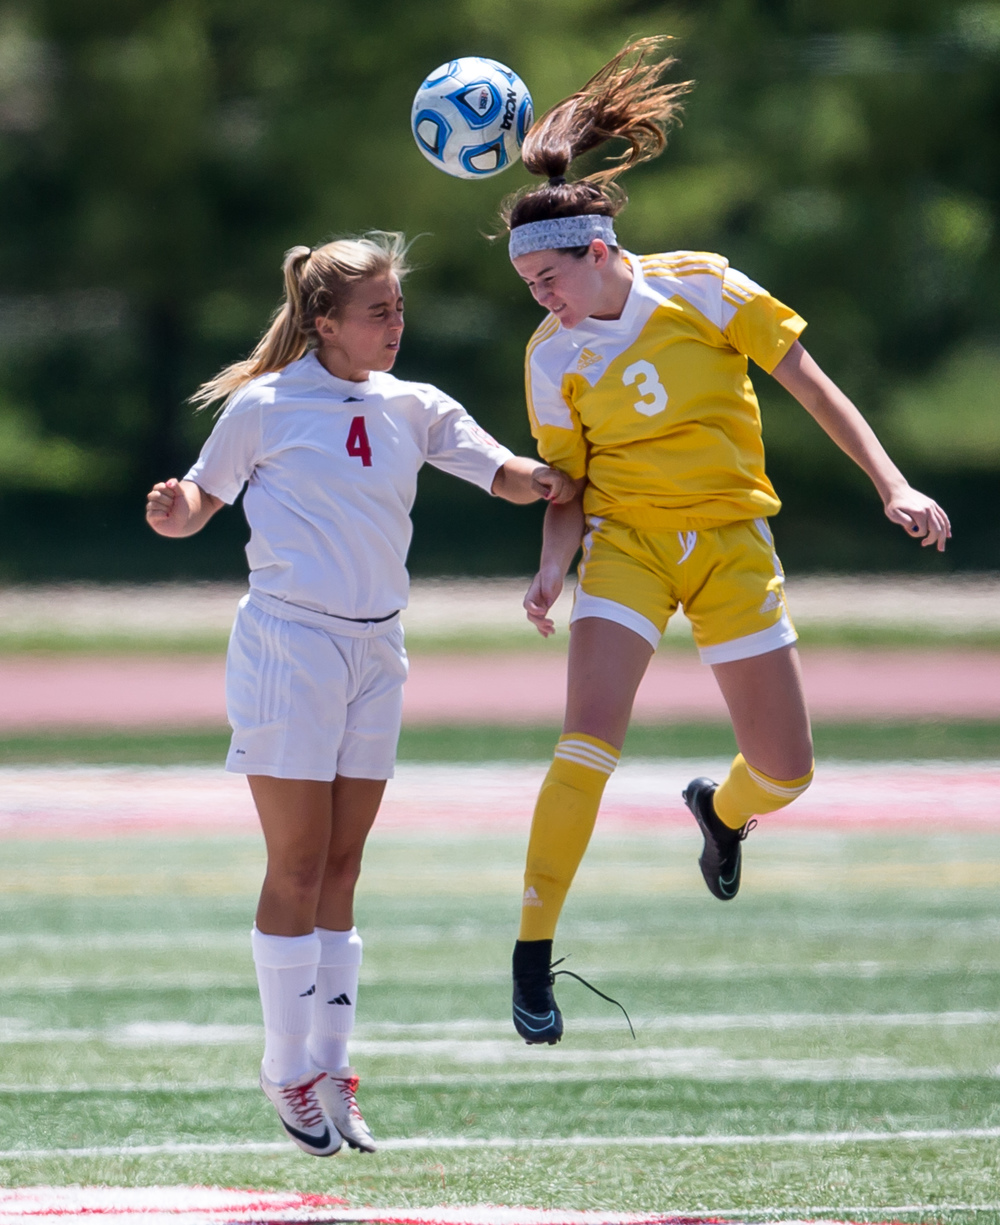 Mundelein Carmel's Erin Johnston (3) wins a header out of the air against Glenwood's Cayne Randle (4) in the first half during the IHSA Class 2A Girls State Soccer Championship at North Central College, Saturday, June 6, 2015, in Naperville, Ill. Justin L. Fowler/The State Journal-Register